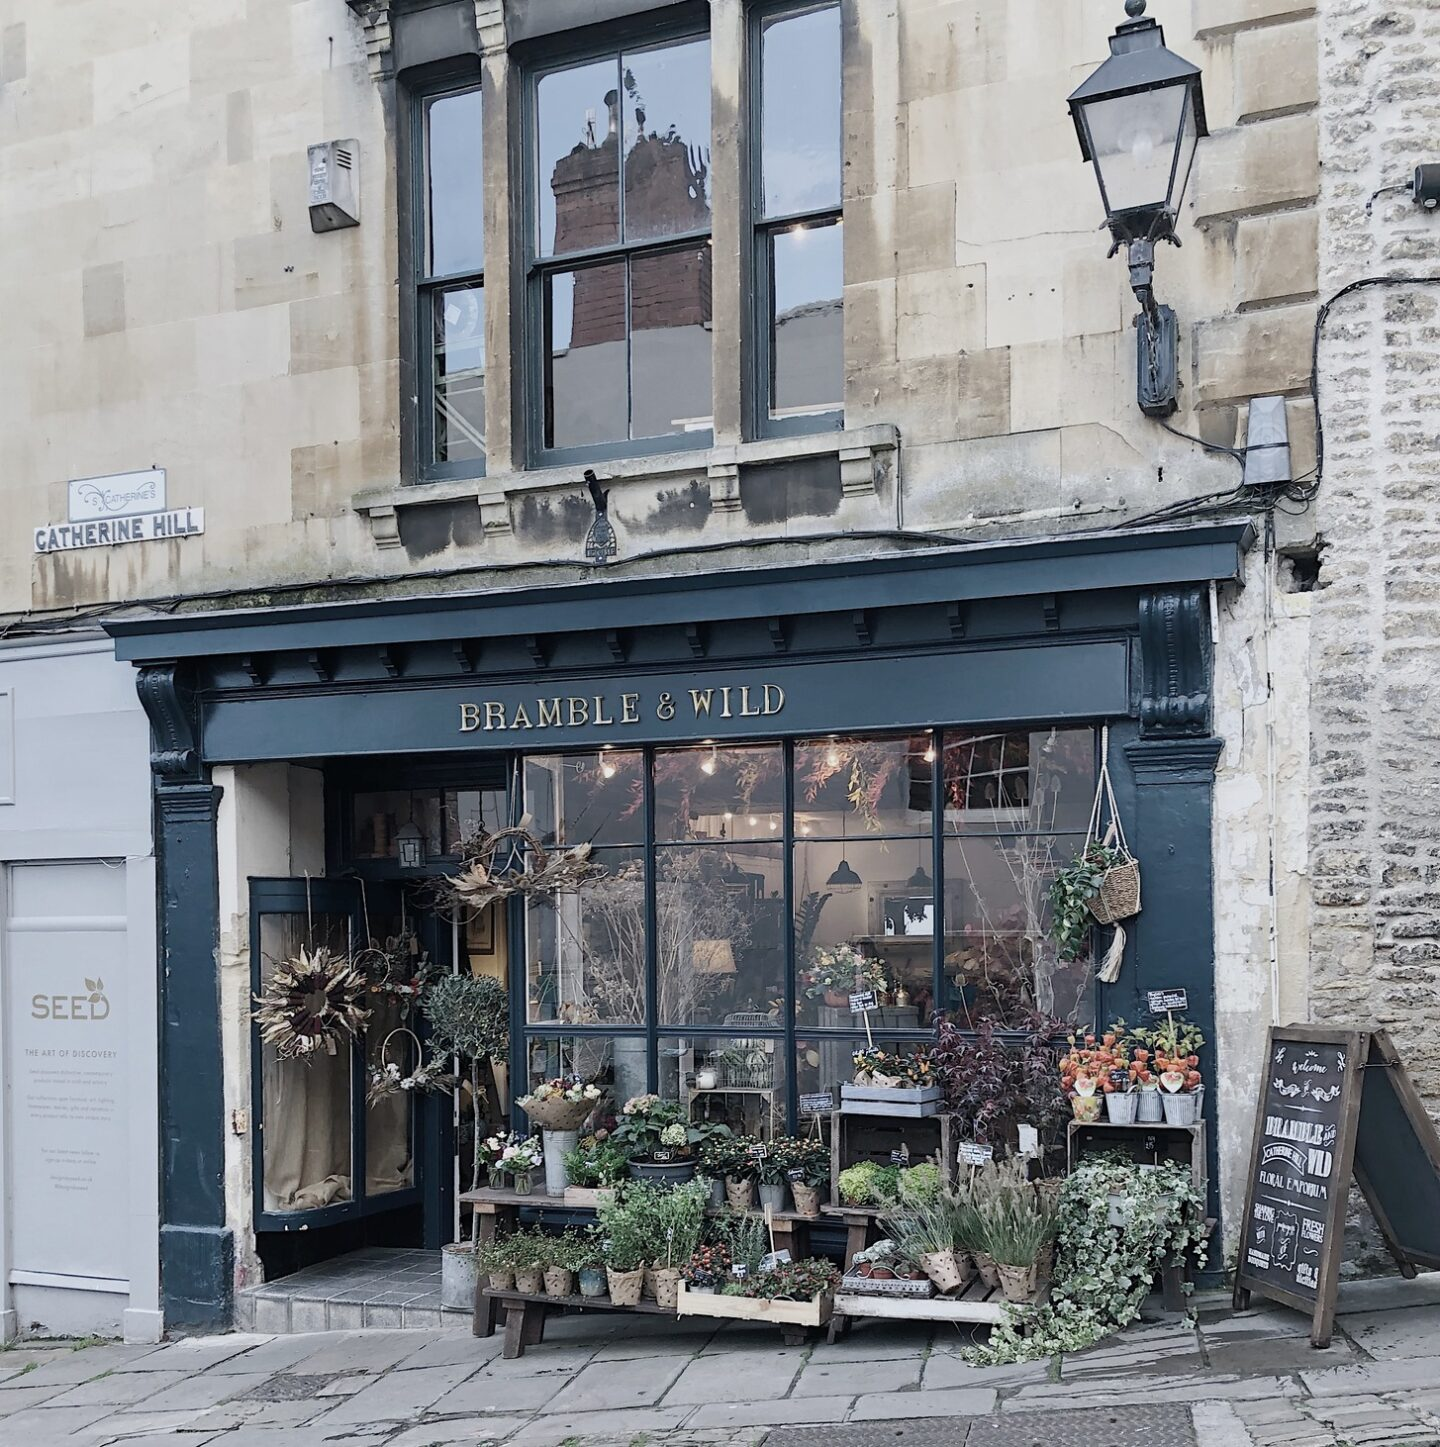 Facade and plants of Bramble & Wild shop in Frome